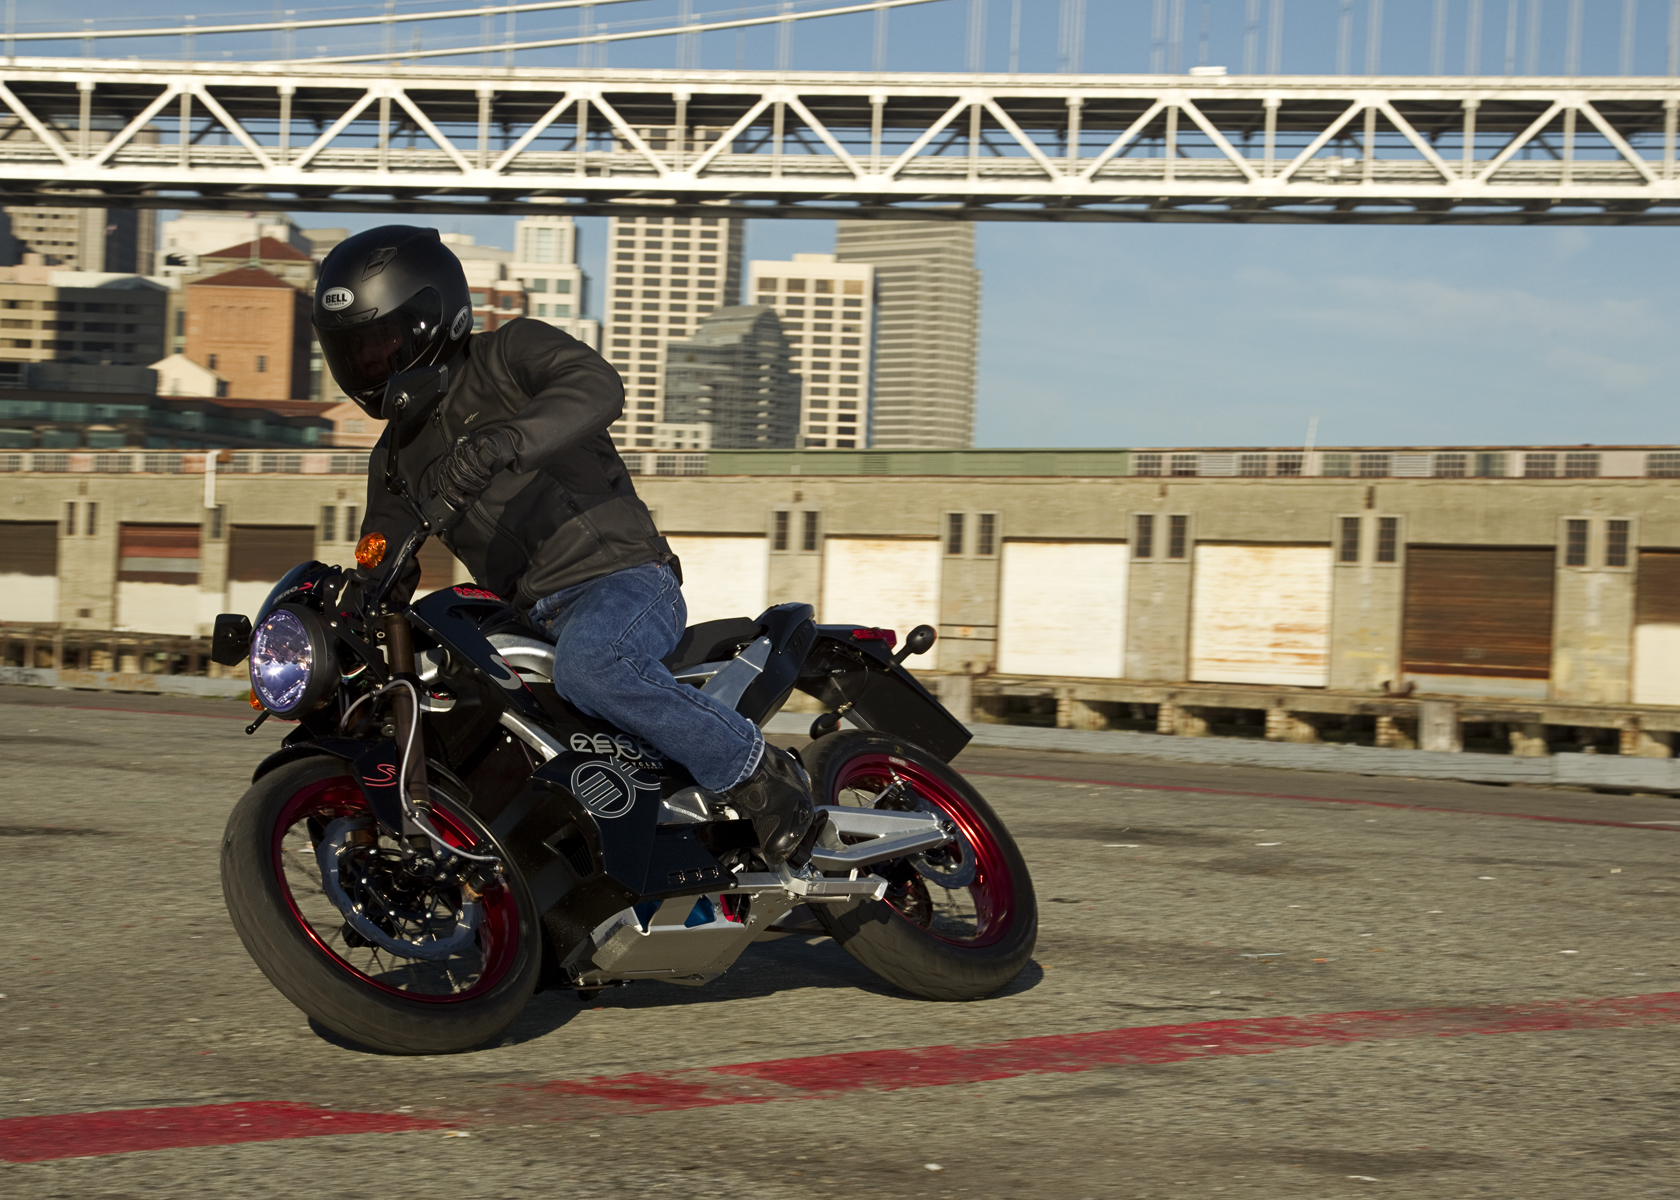 '.2011 Zero S Electric Motorcycle: Lean Right, City View.'